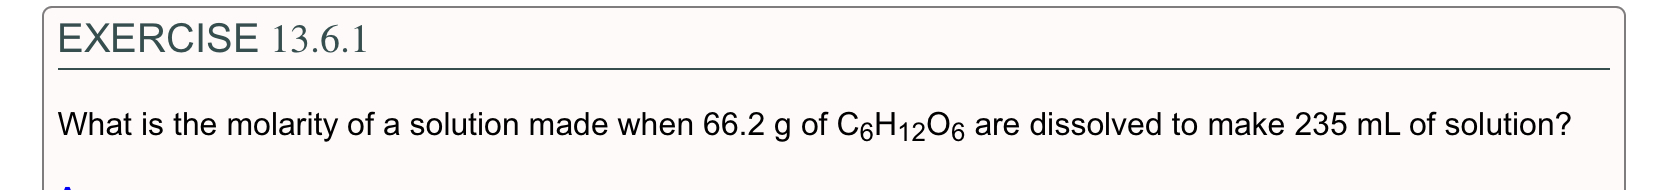 EXERCISE 13.6.1 What is the molarity of a solution made when 66.2 g of C6H12O6 are dissolved to make 235 mL of solution?